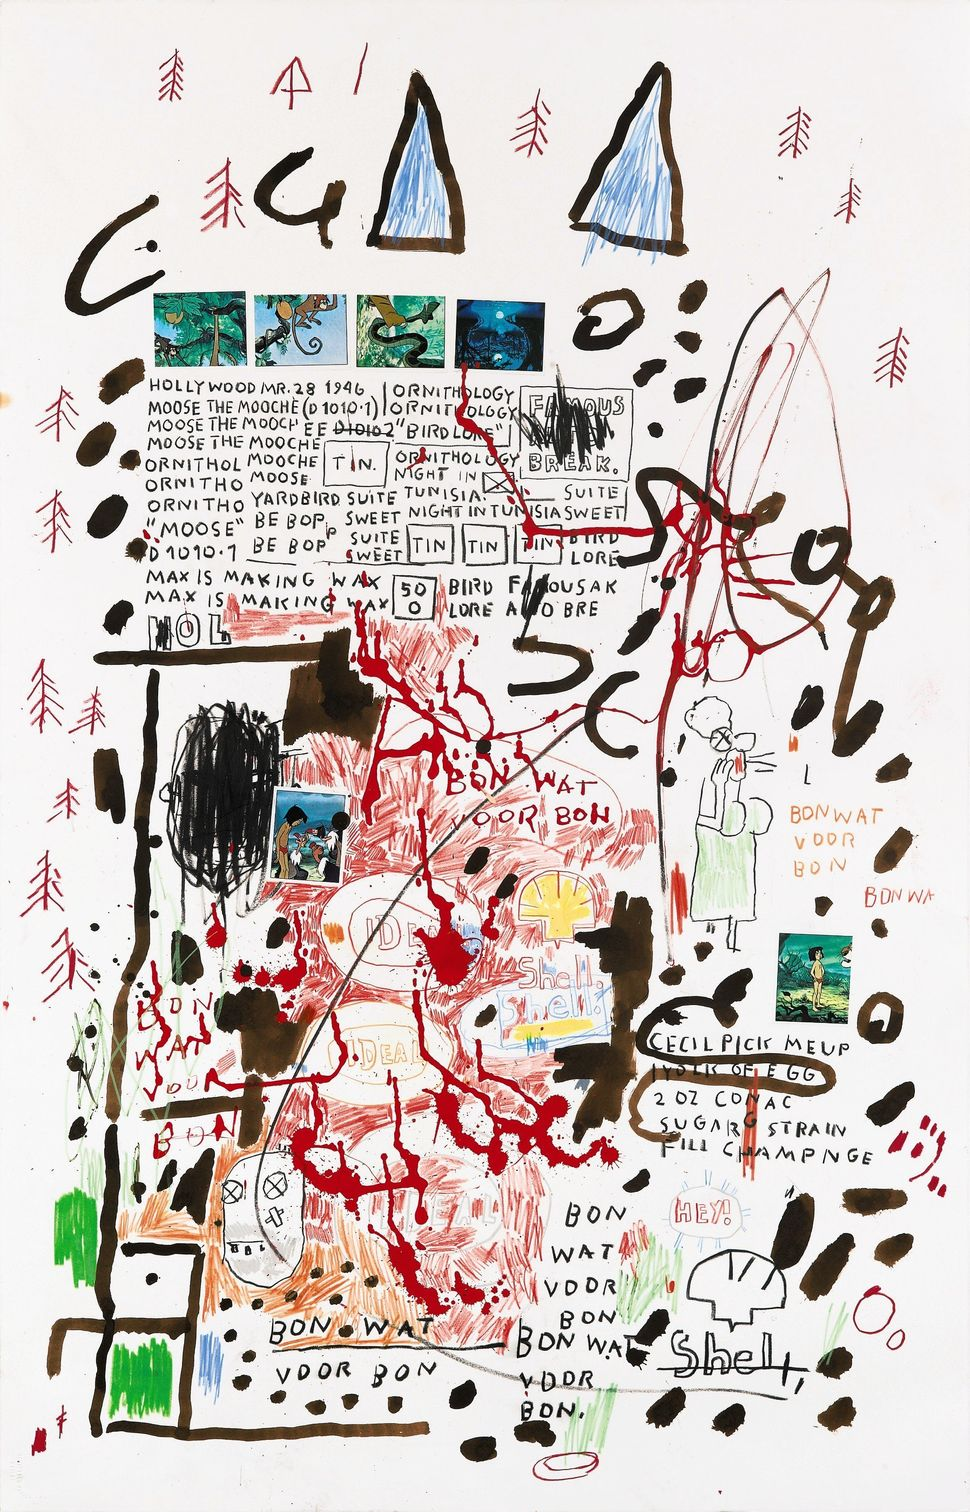 Lot 239, Jean-Michel Basquiat, Untitled graphite, oil stick, acrylic and sticker on paper, 40 3/4 by 26 in. 103.5 by 66 cm. E